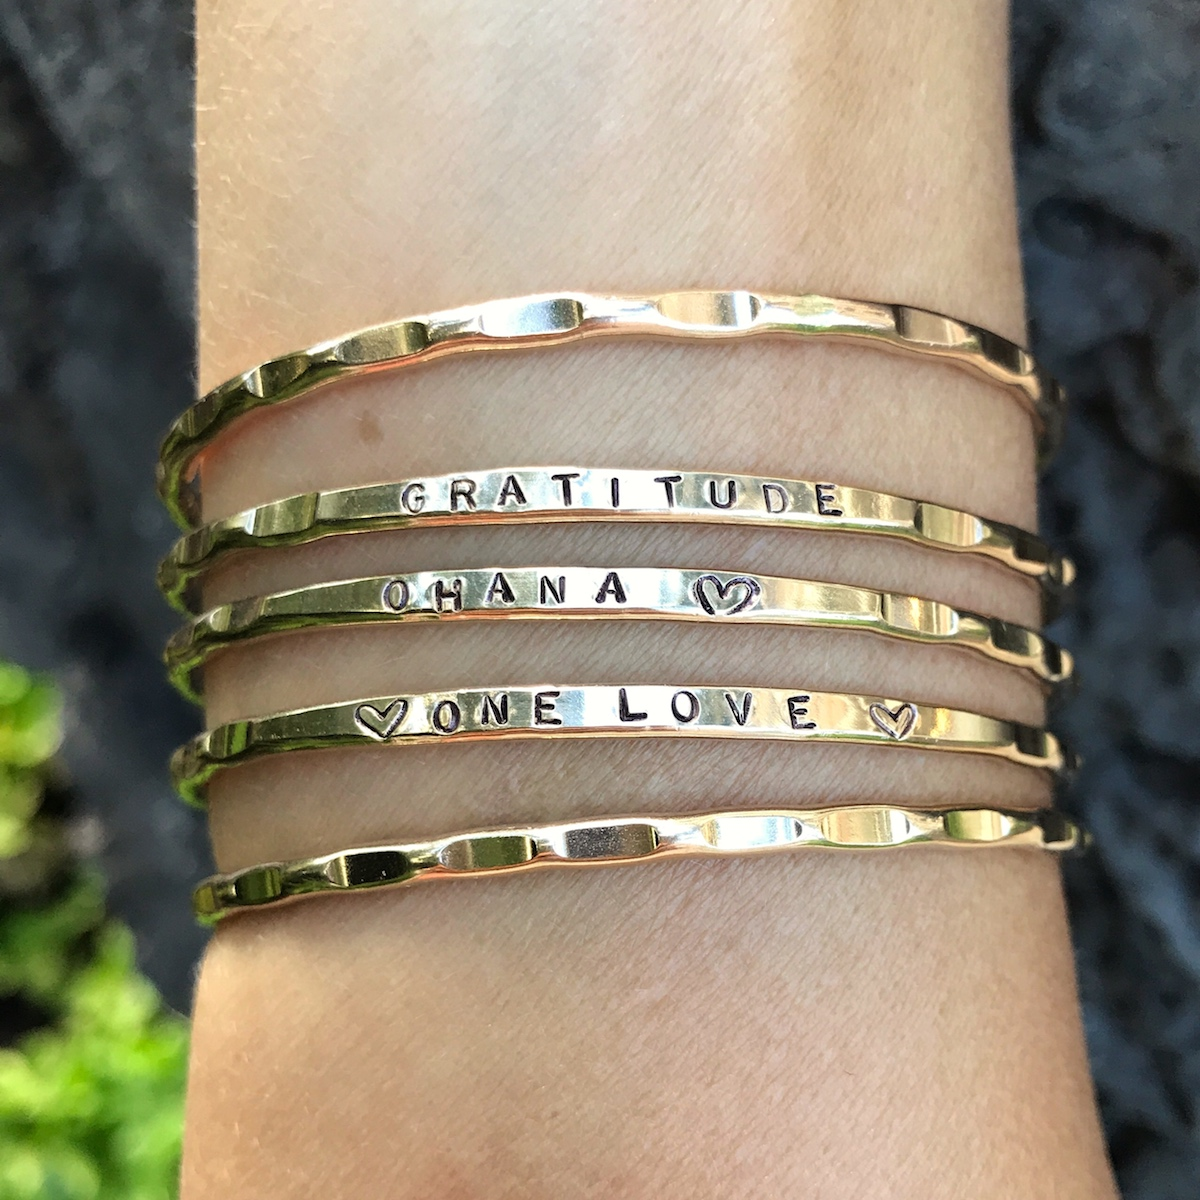 or silver to bracelet ring collections hand gold in perfection yourself stamped believe bangle bracelets